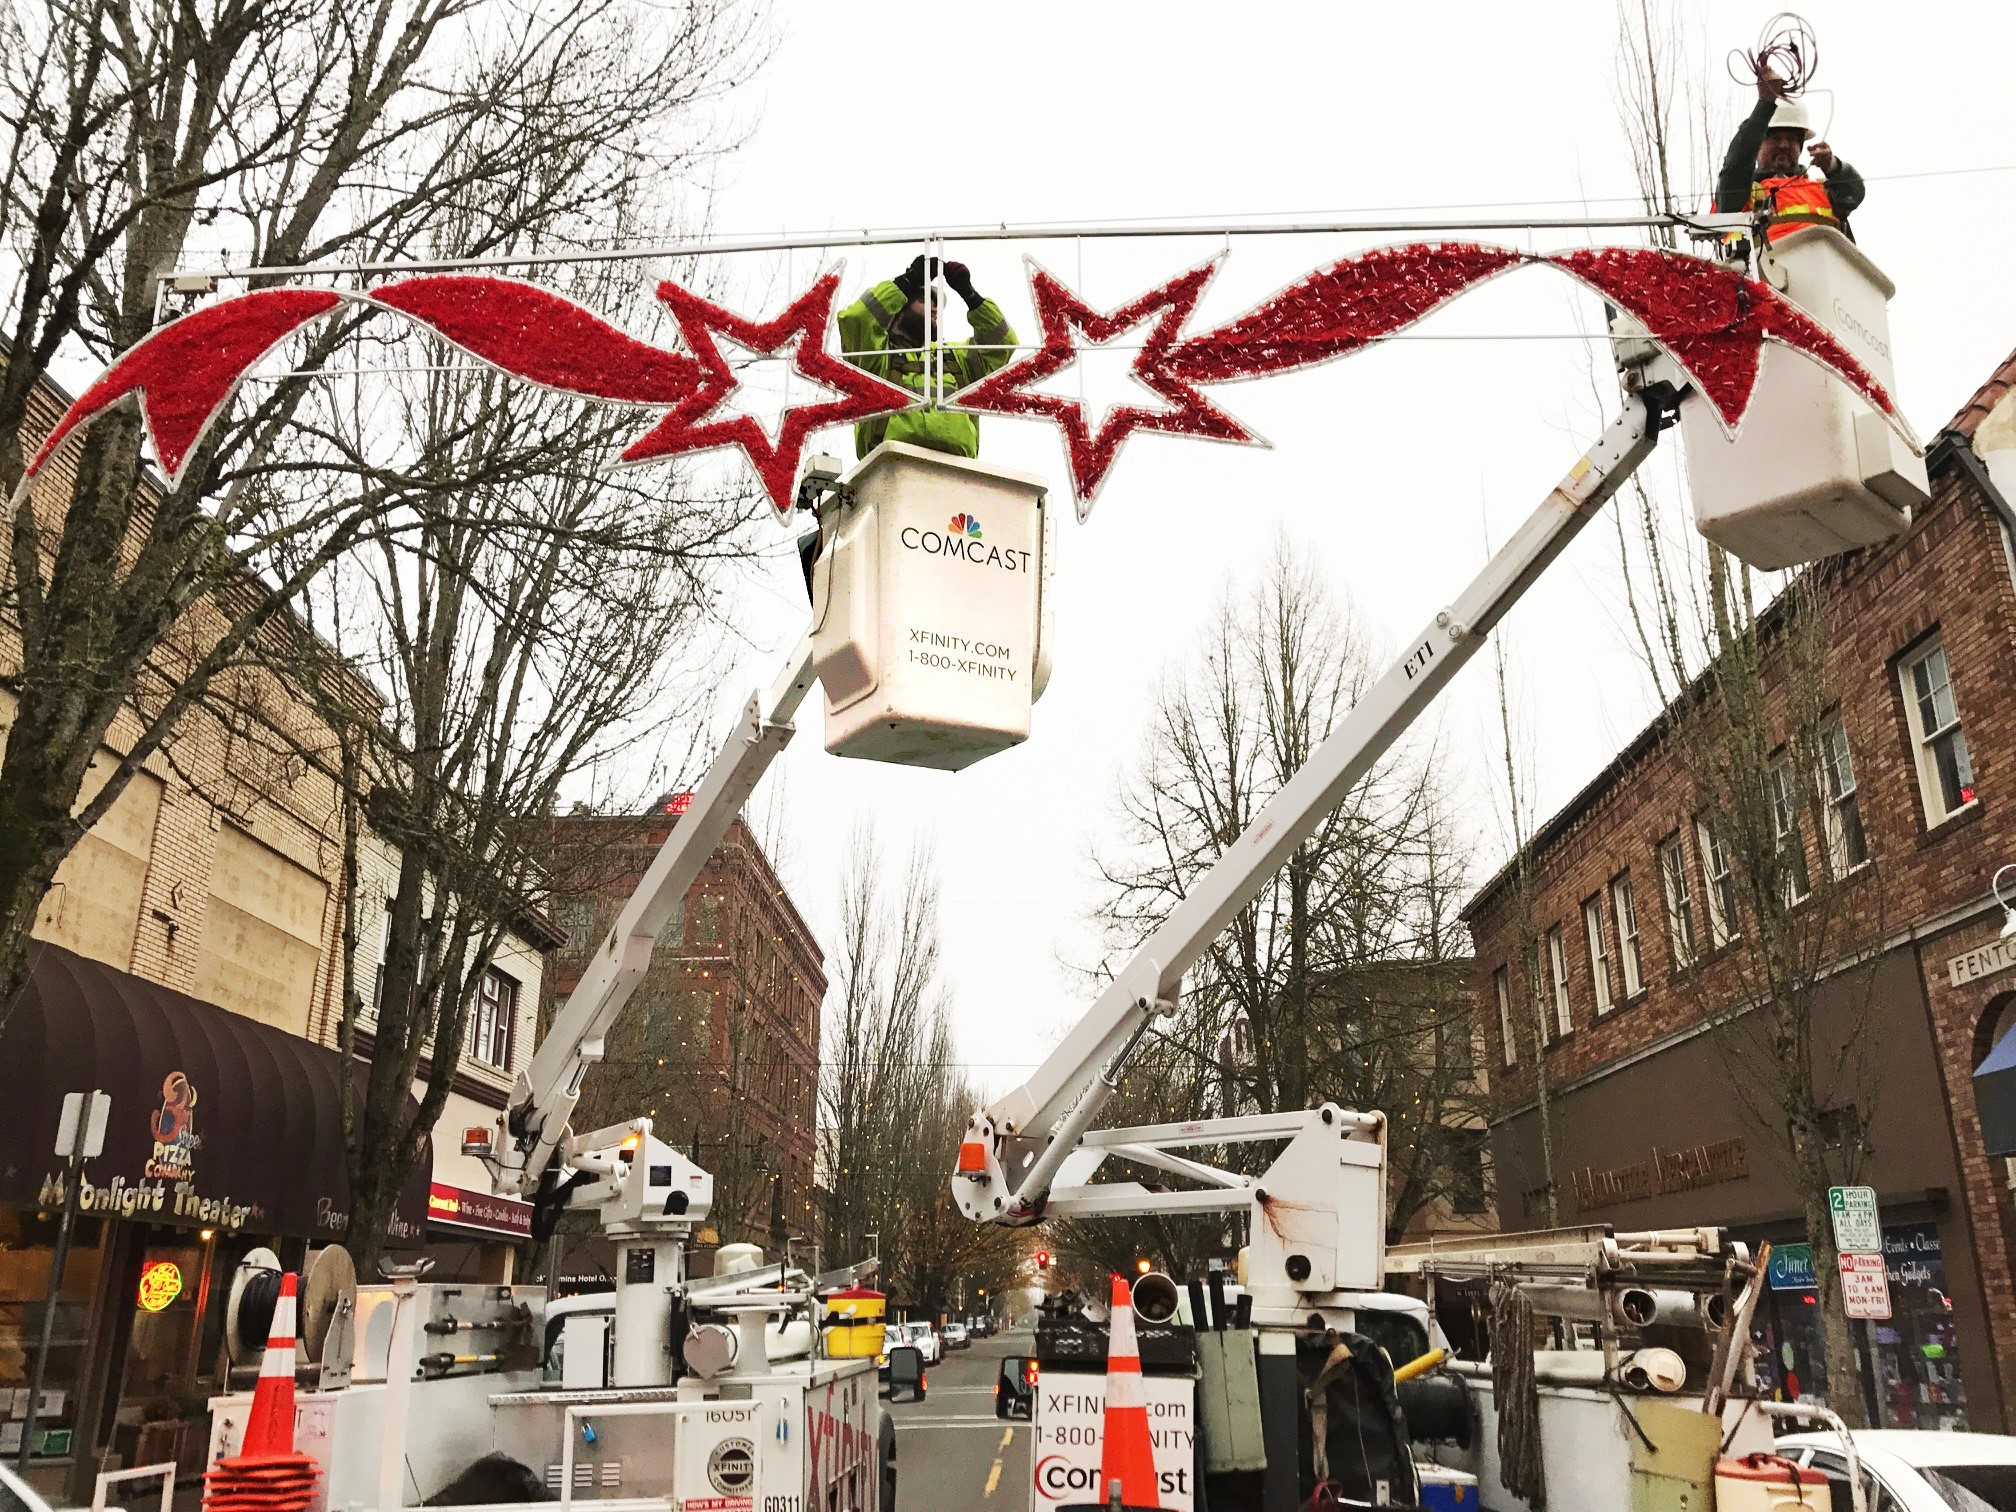 Comcast Helps Communities Decorate for Christmas | Business Wire